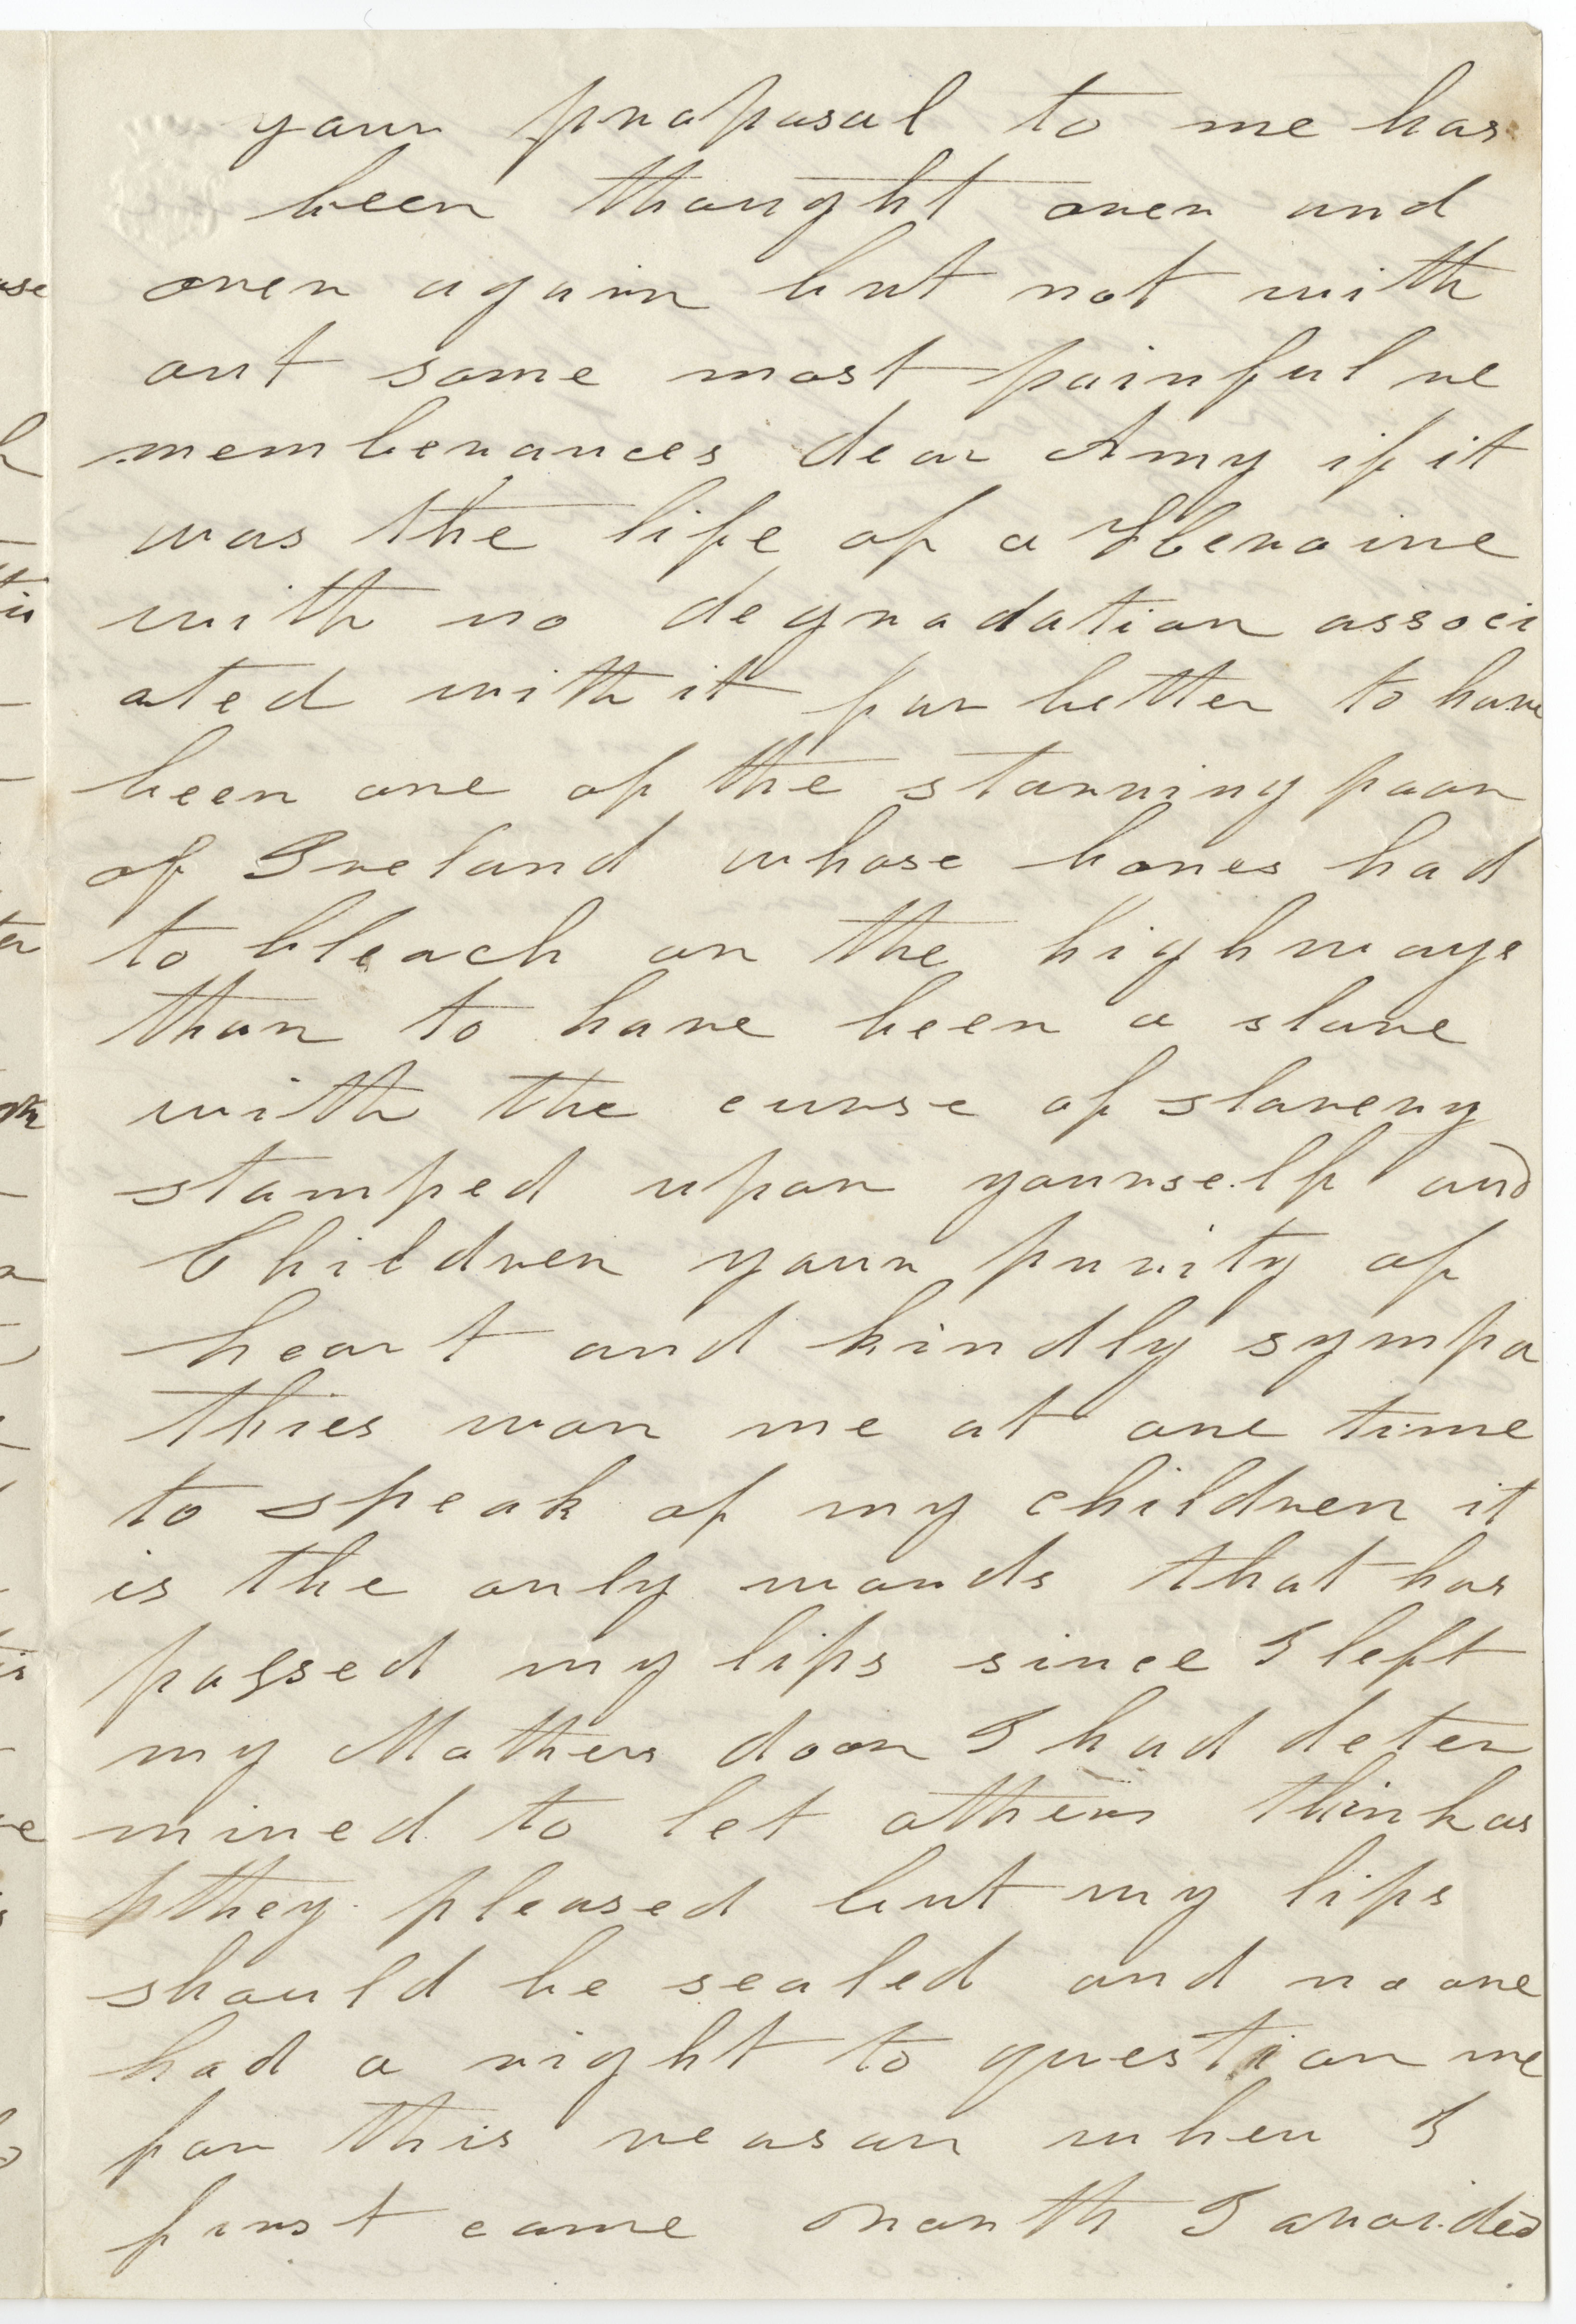 Letter from Harriet Jacobs to Amy Post 1